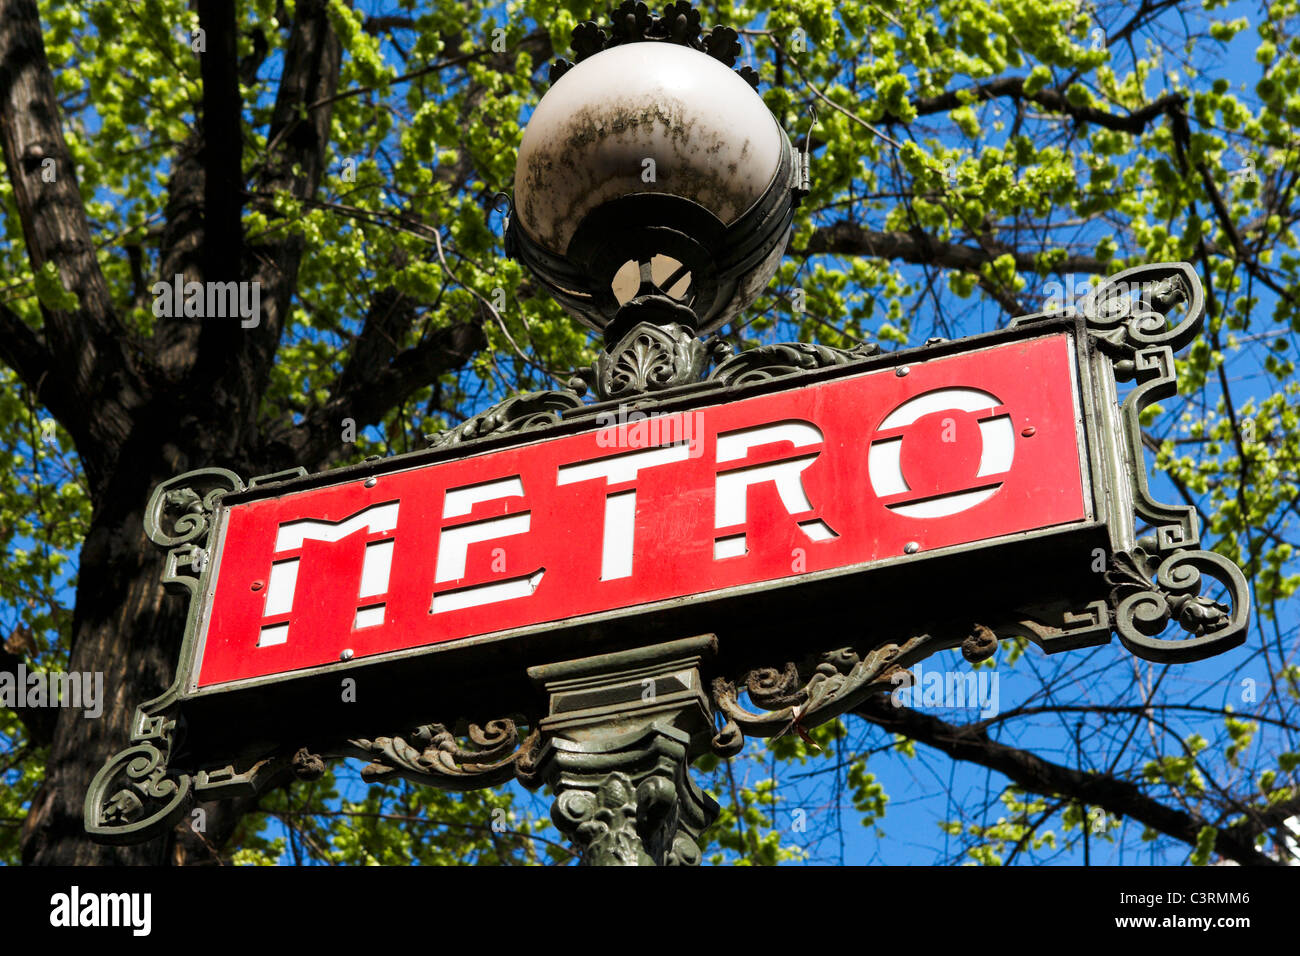 Metro sign, Paris, France - Stock Image